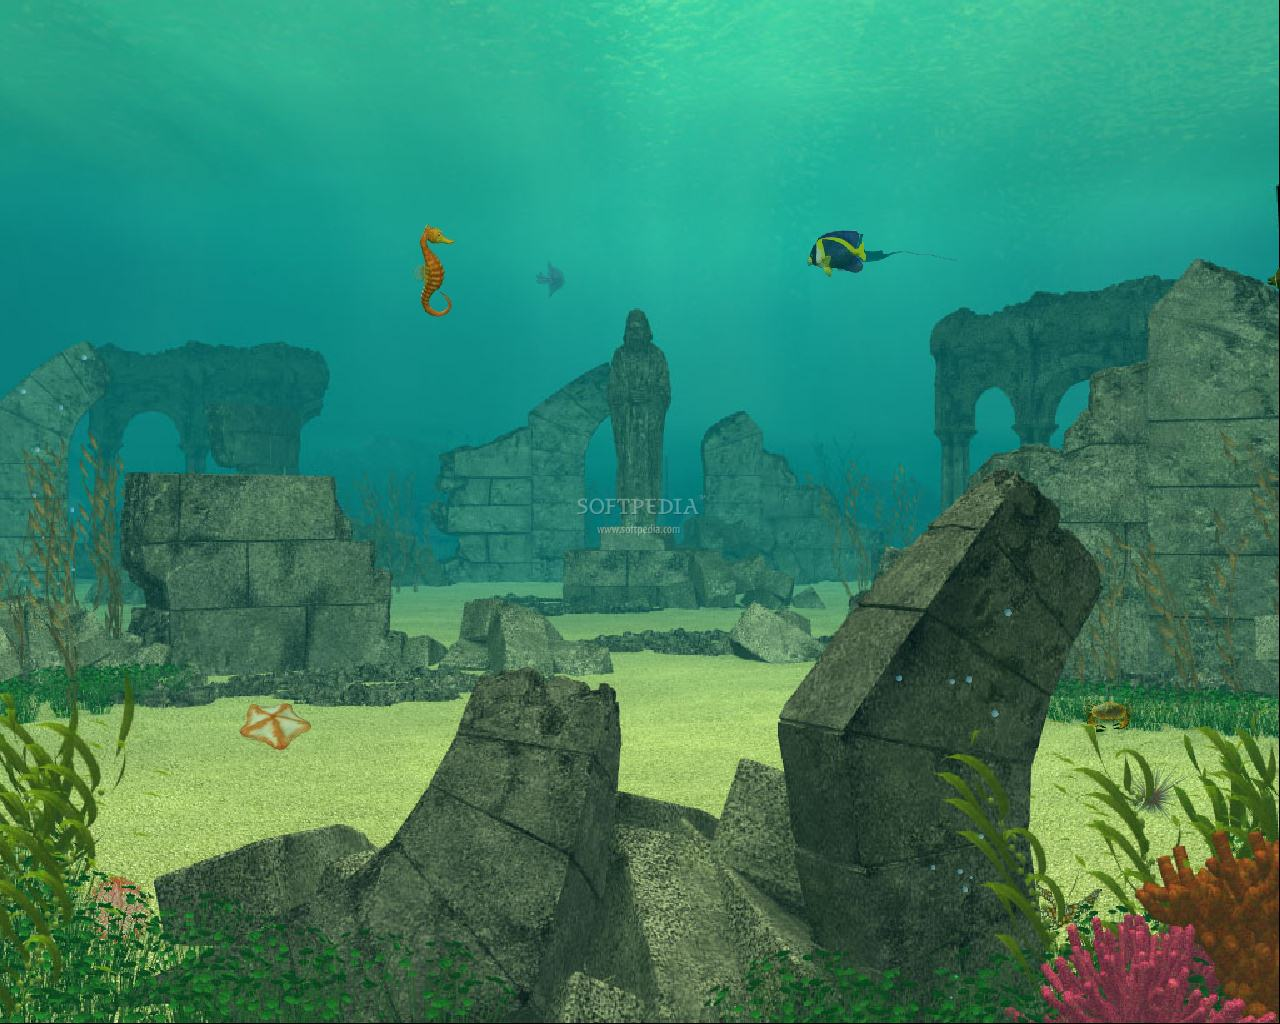 Underwater ruins animated wallpaper this is the image that